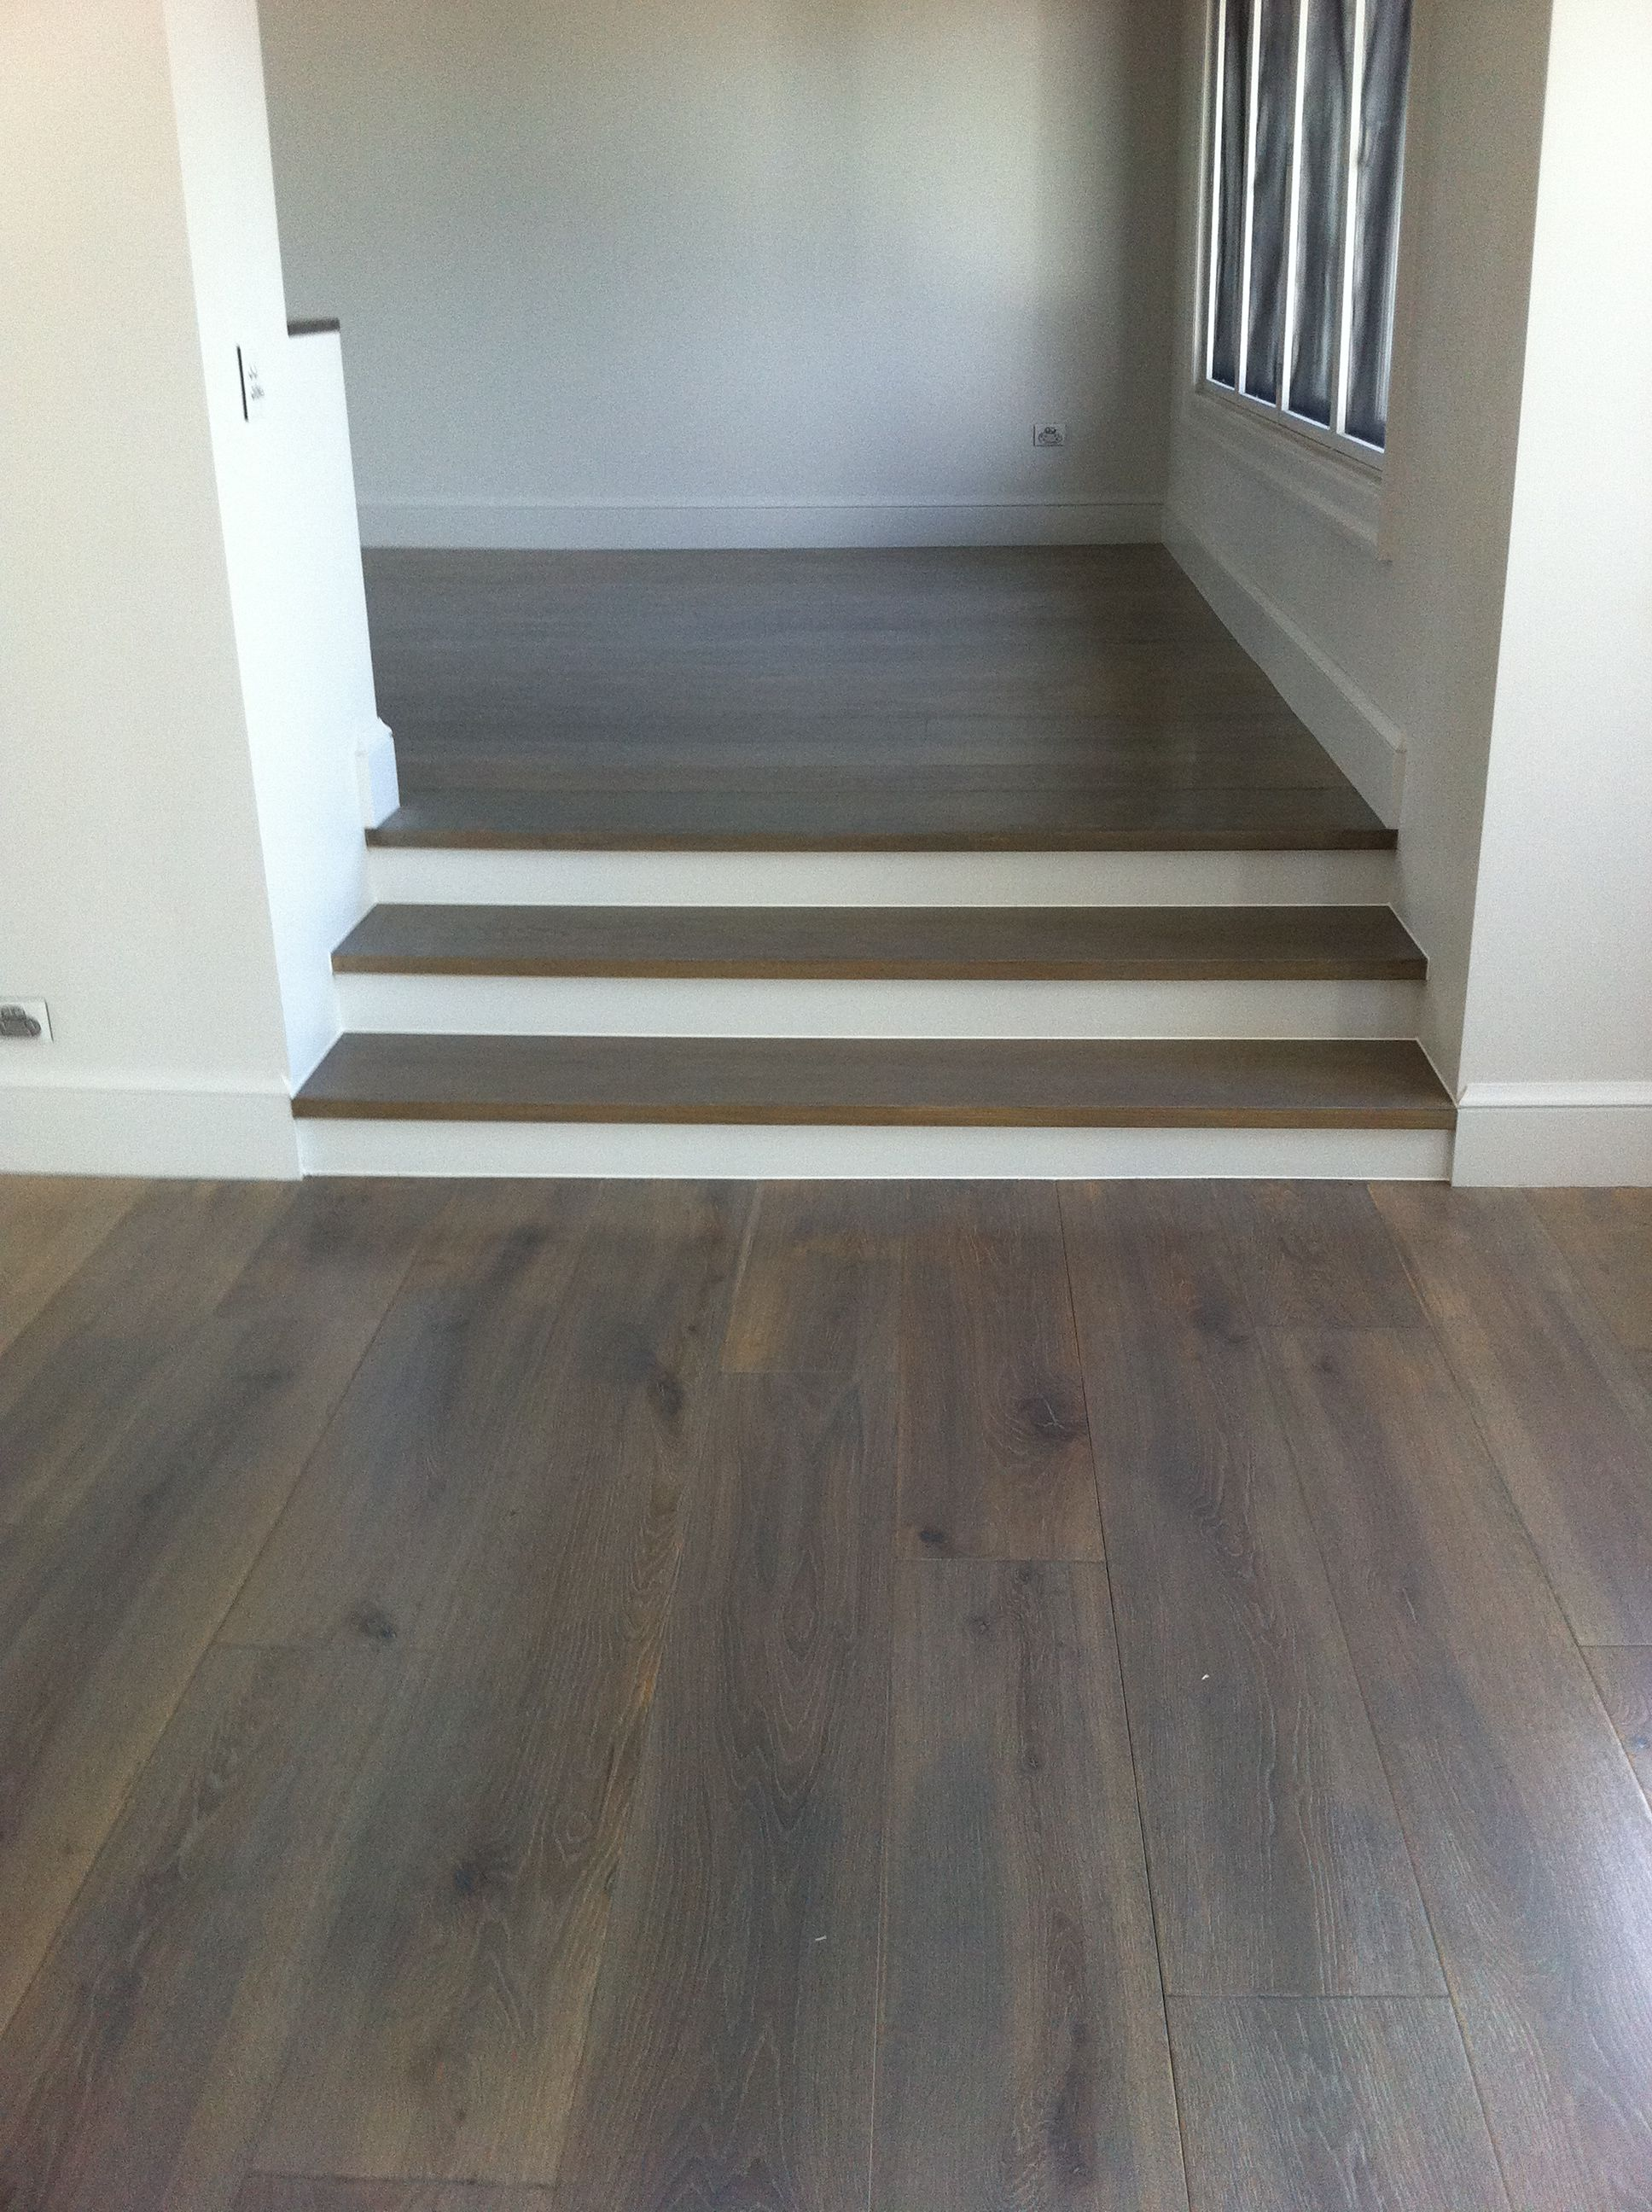 American White Oak Solid Floor Grey Stain Hardwood Floor Colors Wood Floor Stain Colors Floor Stain Colors